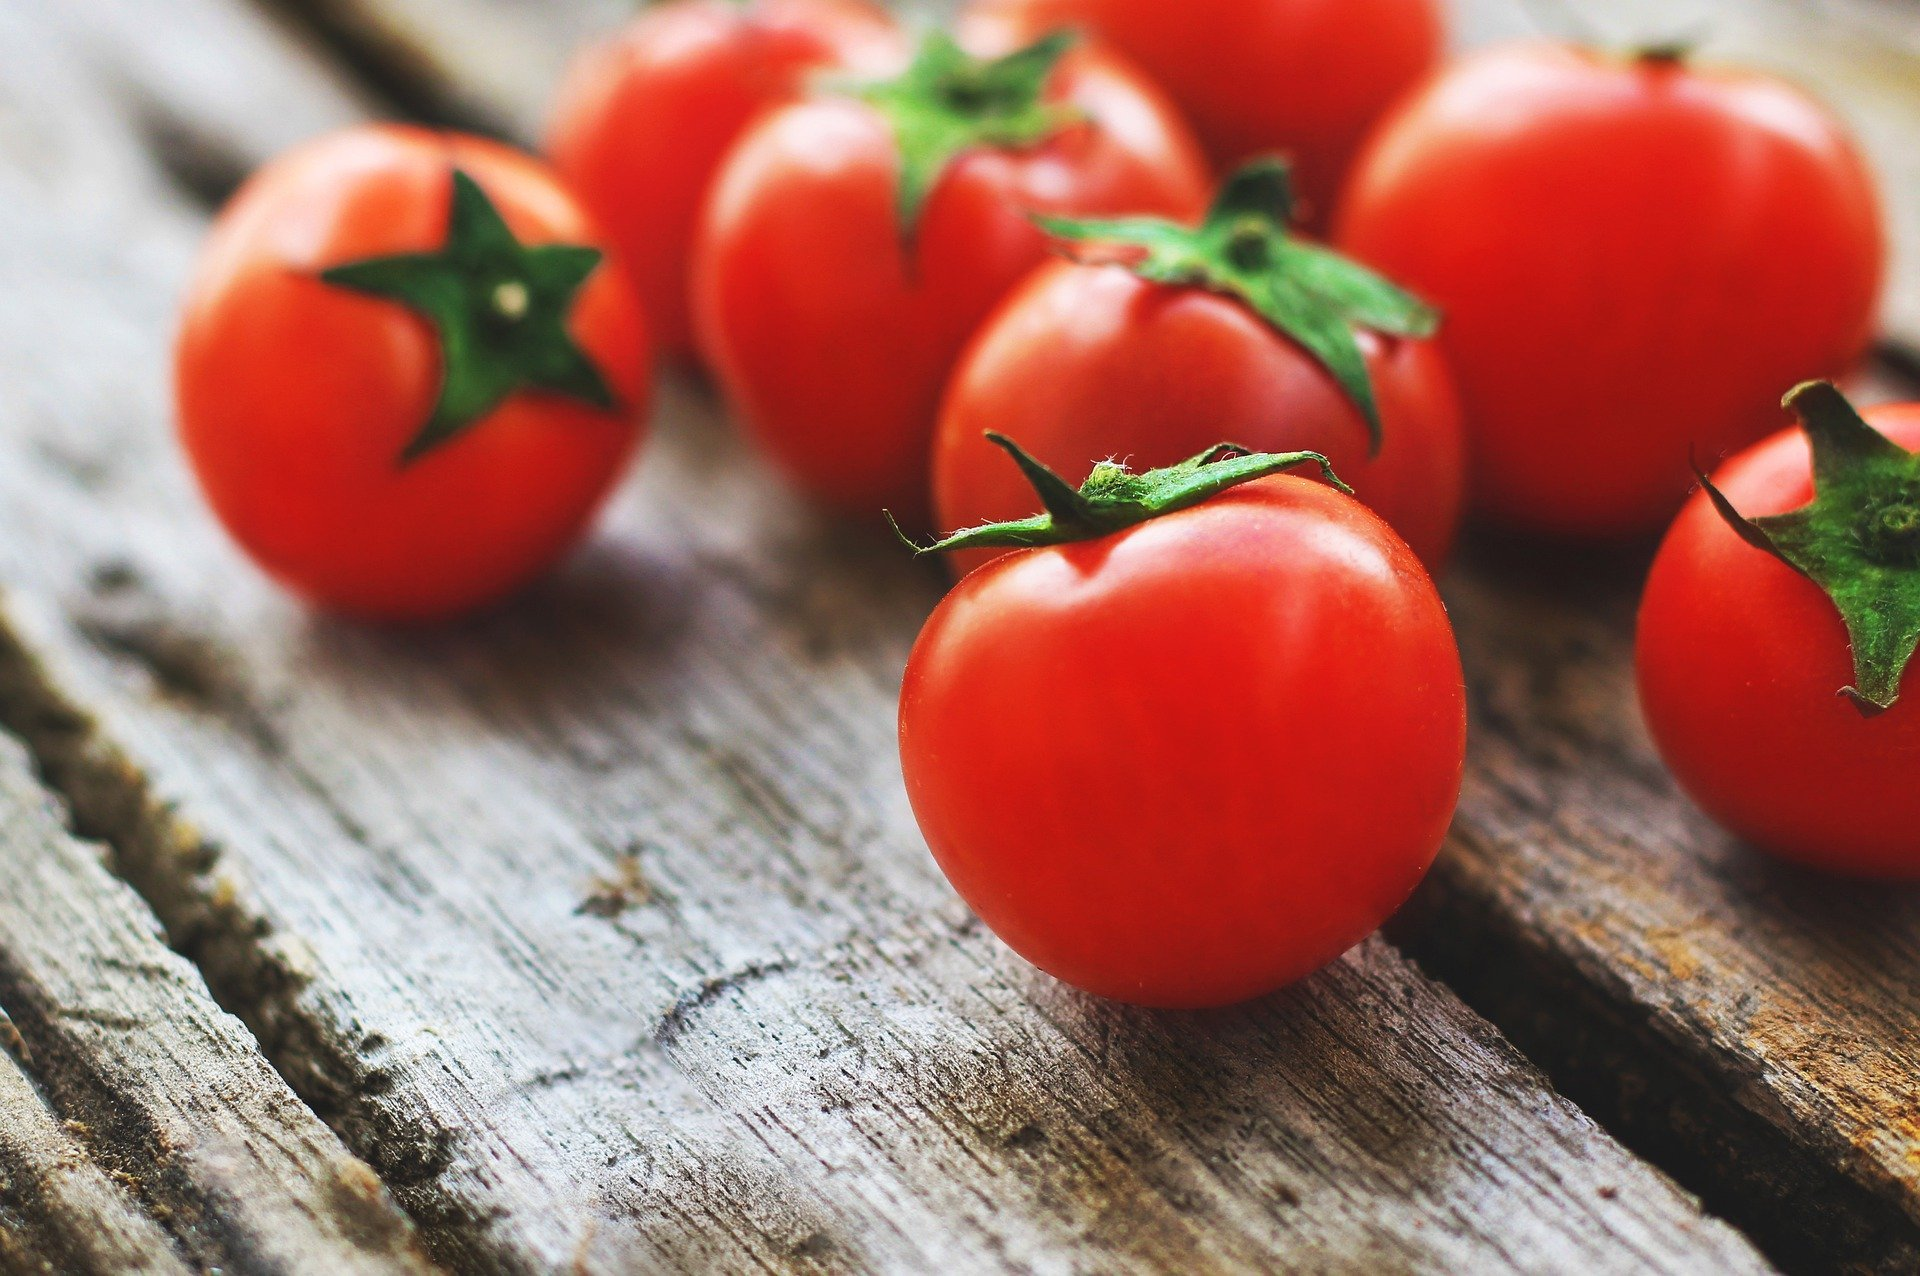 Can Dogs Eat Tomatoes? | Food Sharing